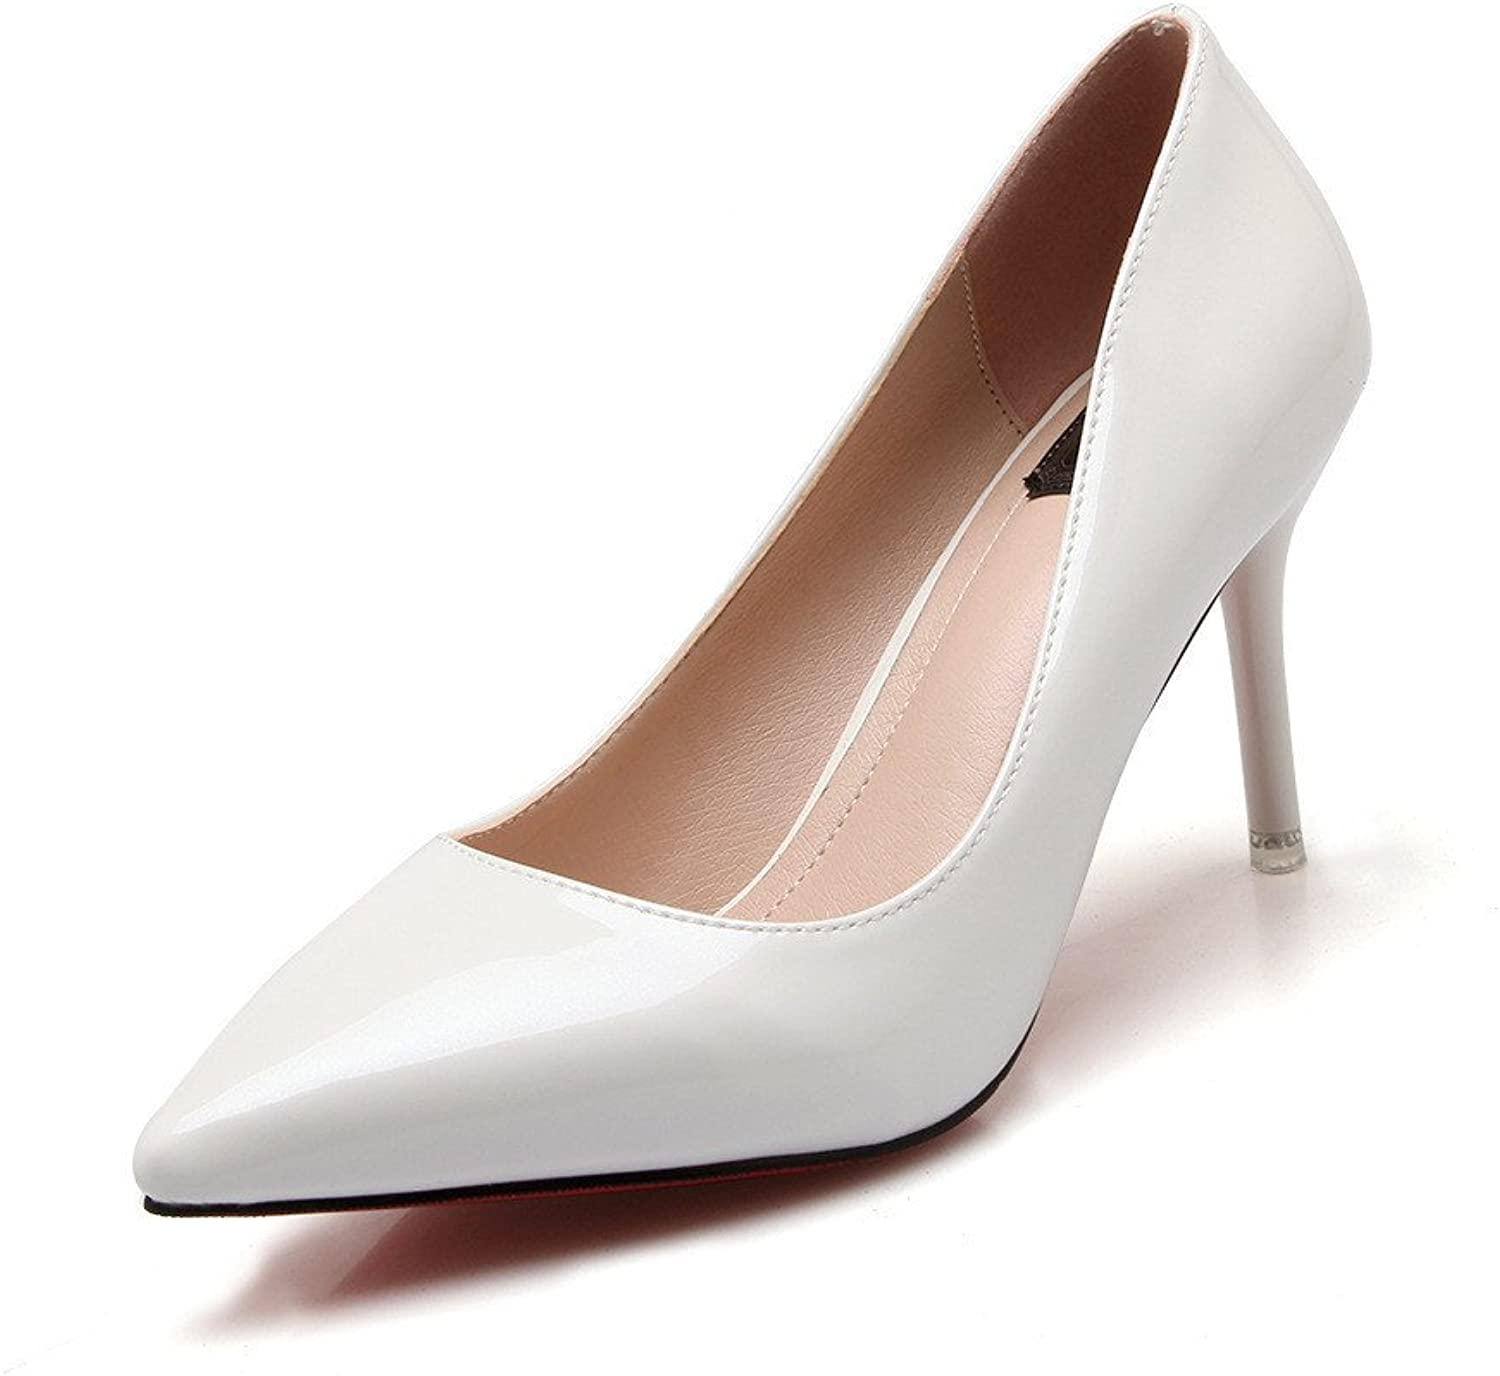 shoesmaker's heart The New Trend of New shoes shoes shoes High Heels Shallow Mouth with Fine Pointed Leather Solid Work